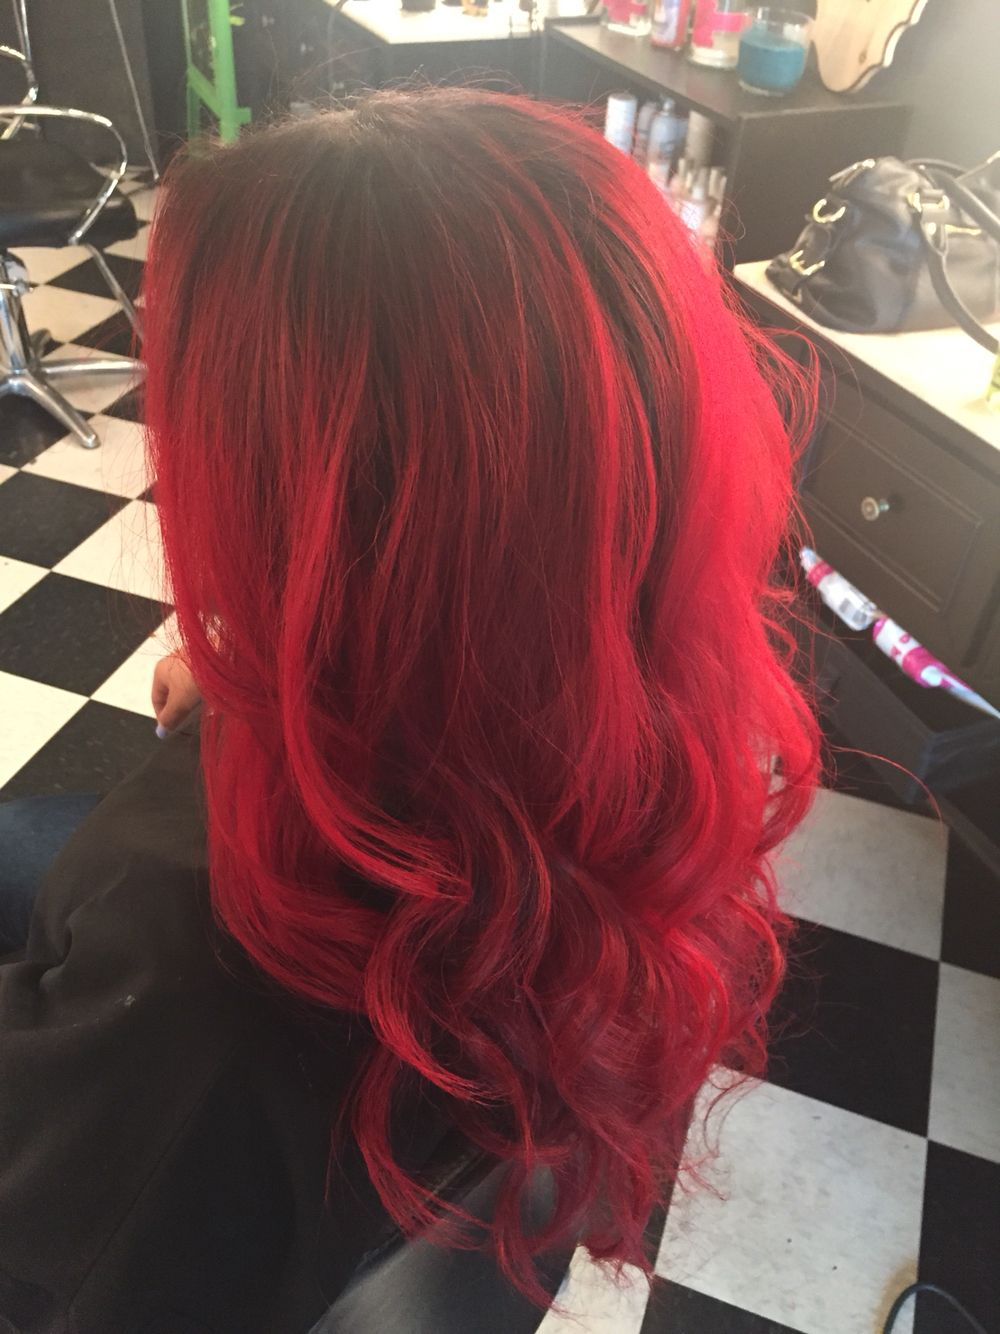 Pin By Sj On Hair Coloring Black Roots Red Hair Hair Beauty Hair Color